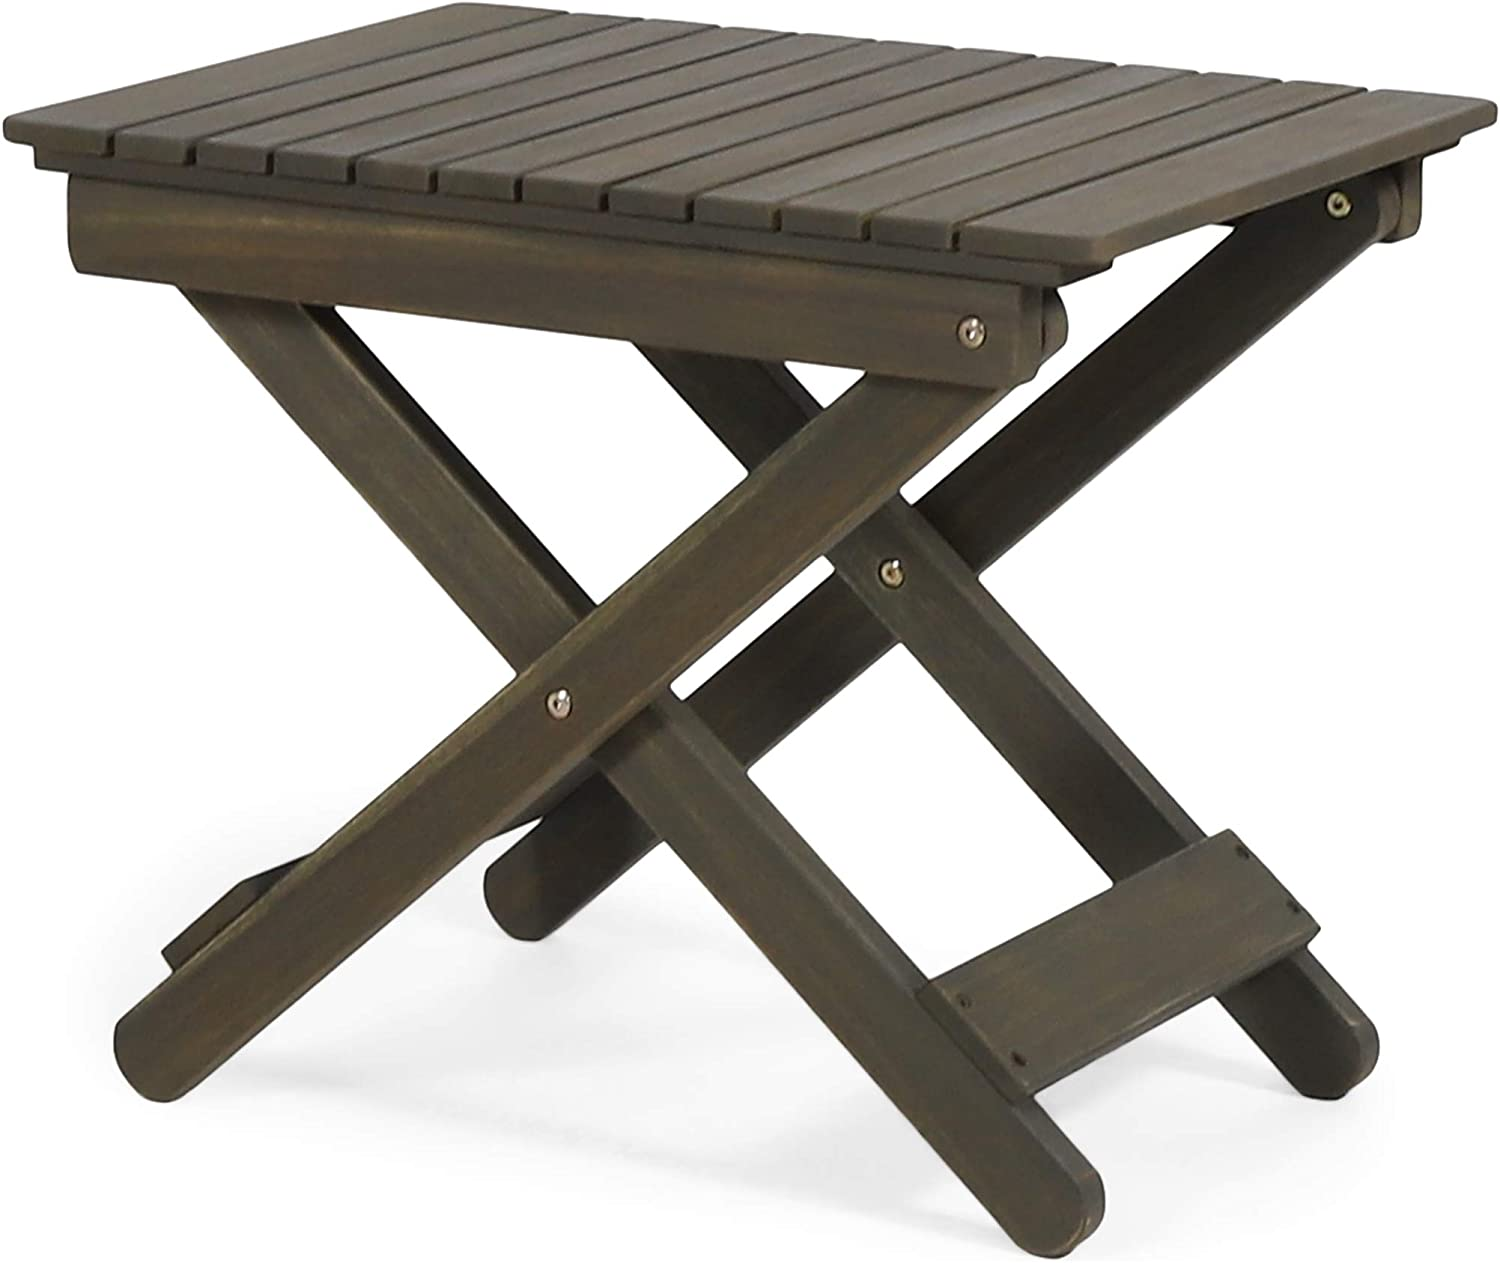 Christopher Knight Home 312839 Clementine Outdoor Folding Side Table, Gray : Garden & Outdoor